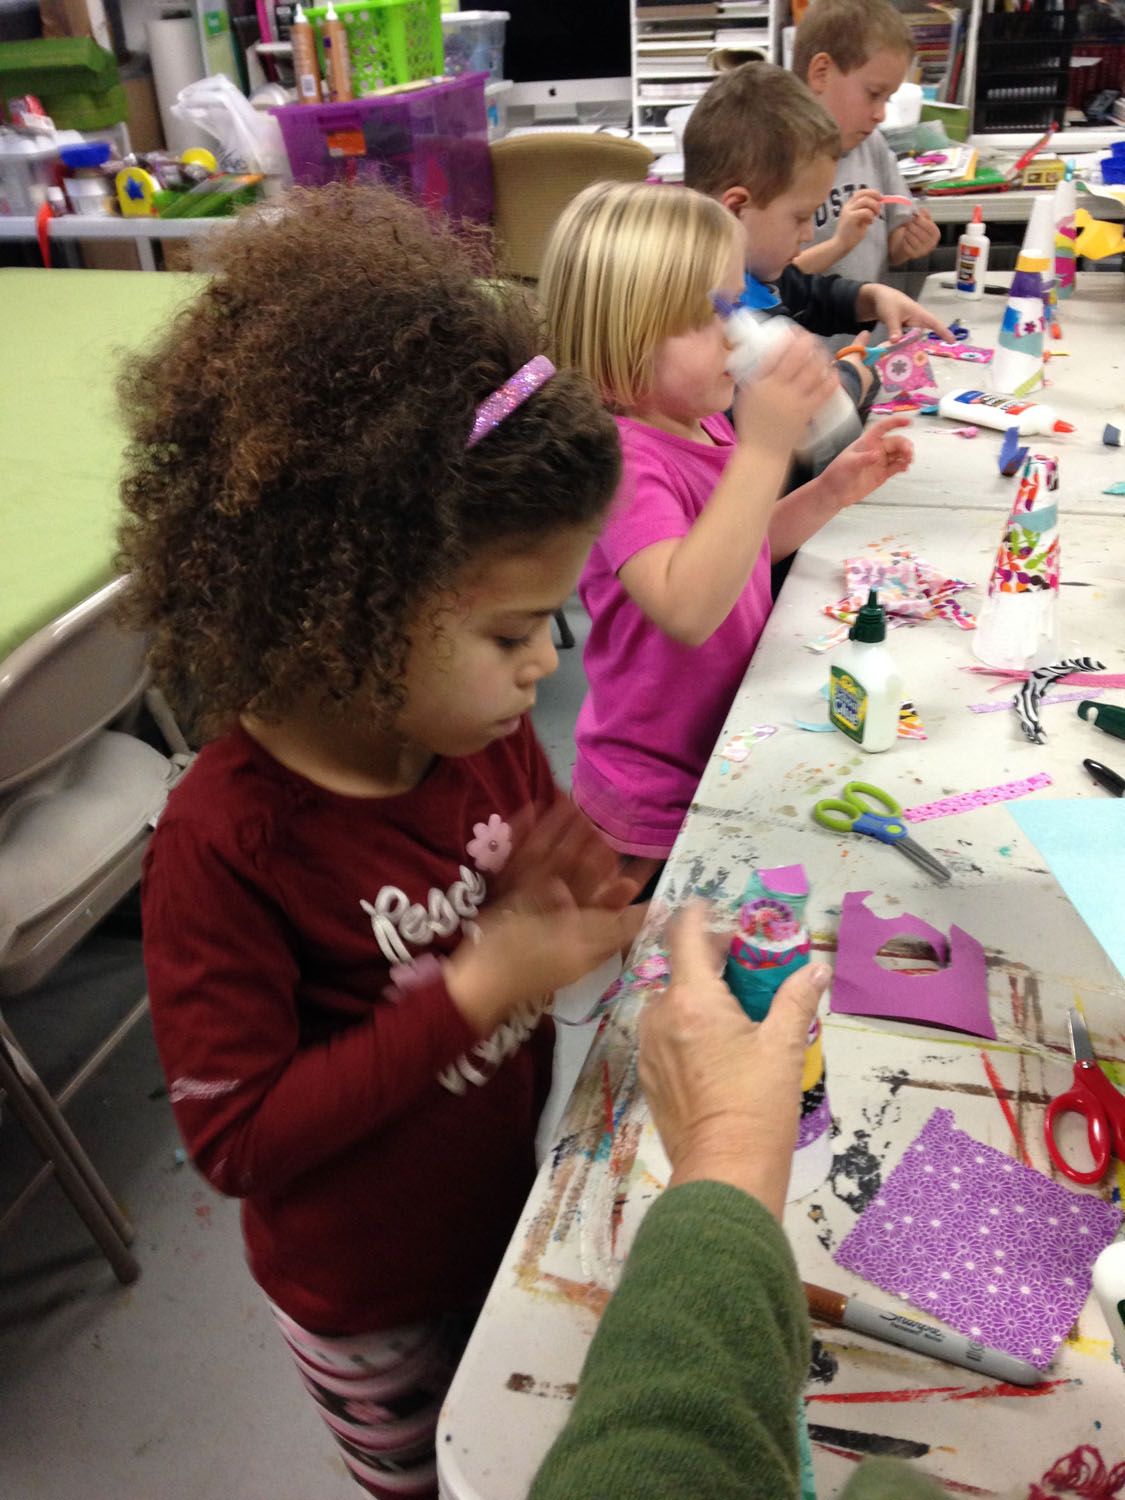 boys-and-girls-making-art-at-camp-art-by-tjm-studio-greensboro-img_0402.jpg